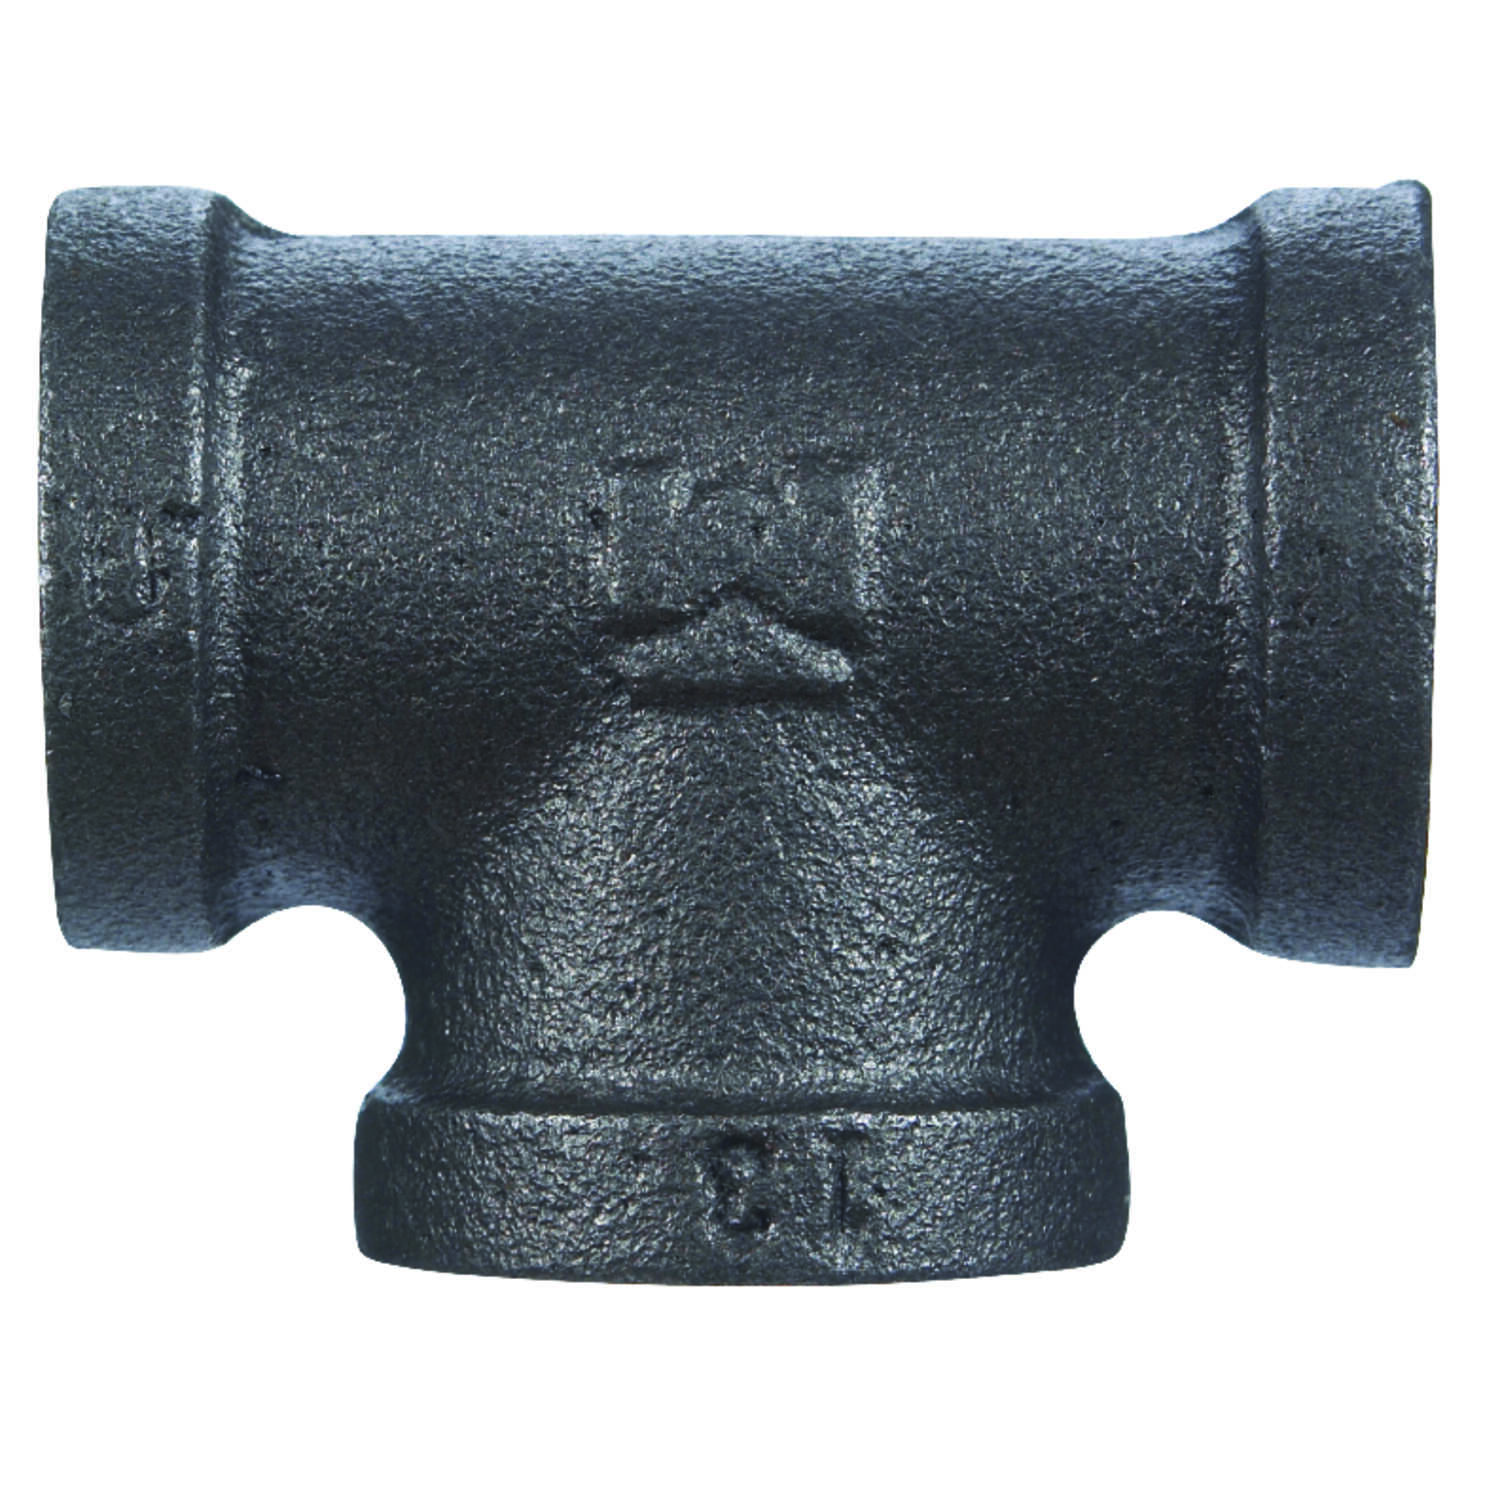 B & K  2 in. FPT   x 2 in. Dia. FPT  Black  Malleable Iron  Tee